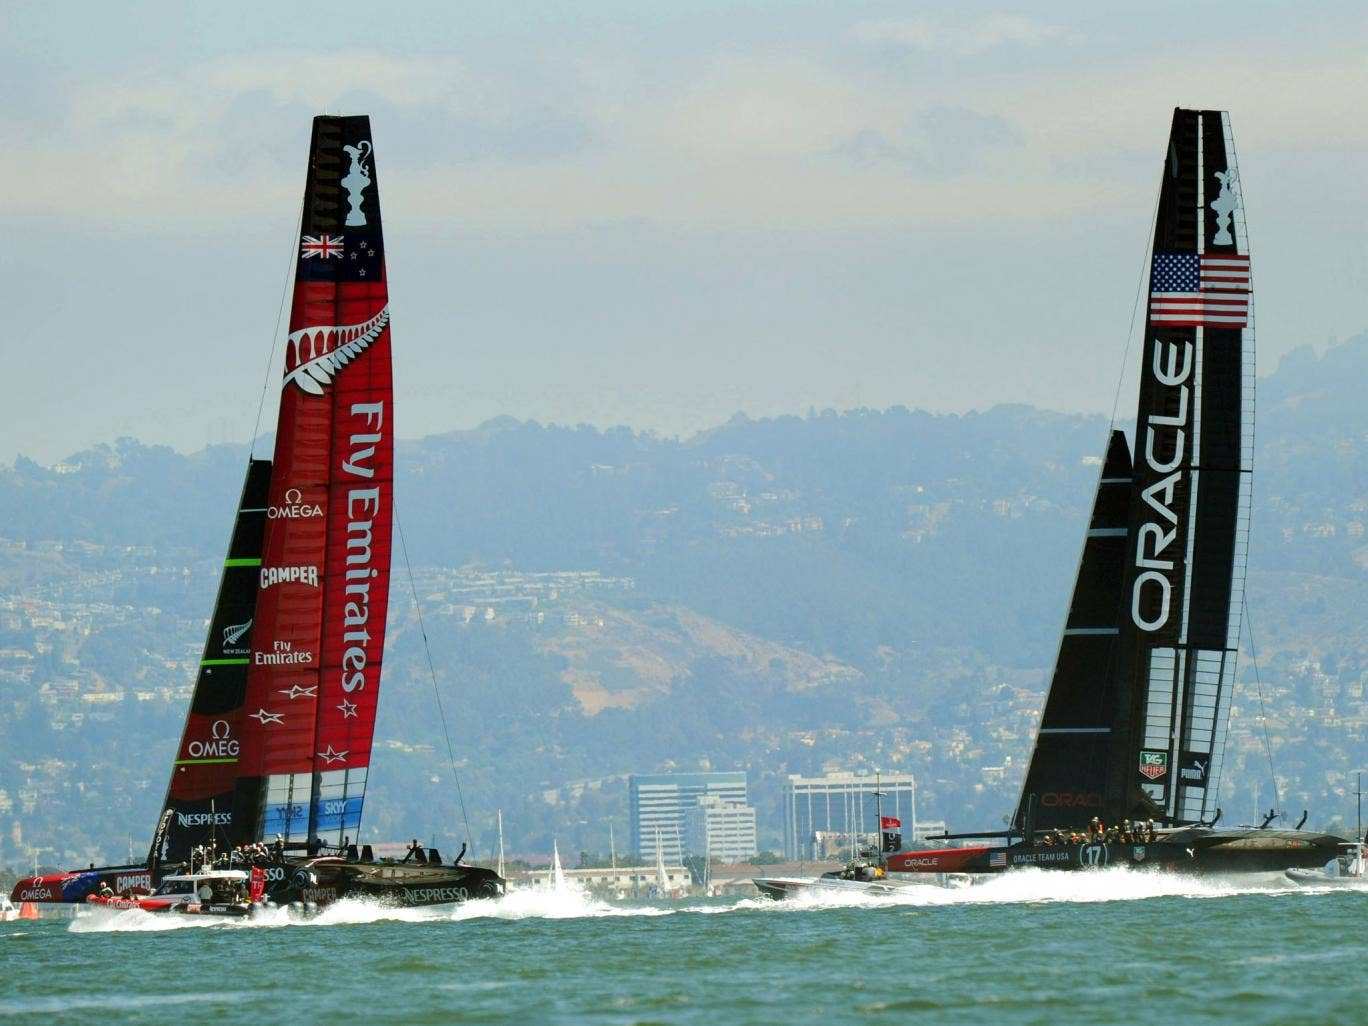 Oracle Team USA races against Emirates Team New Zealand